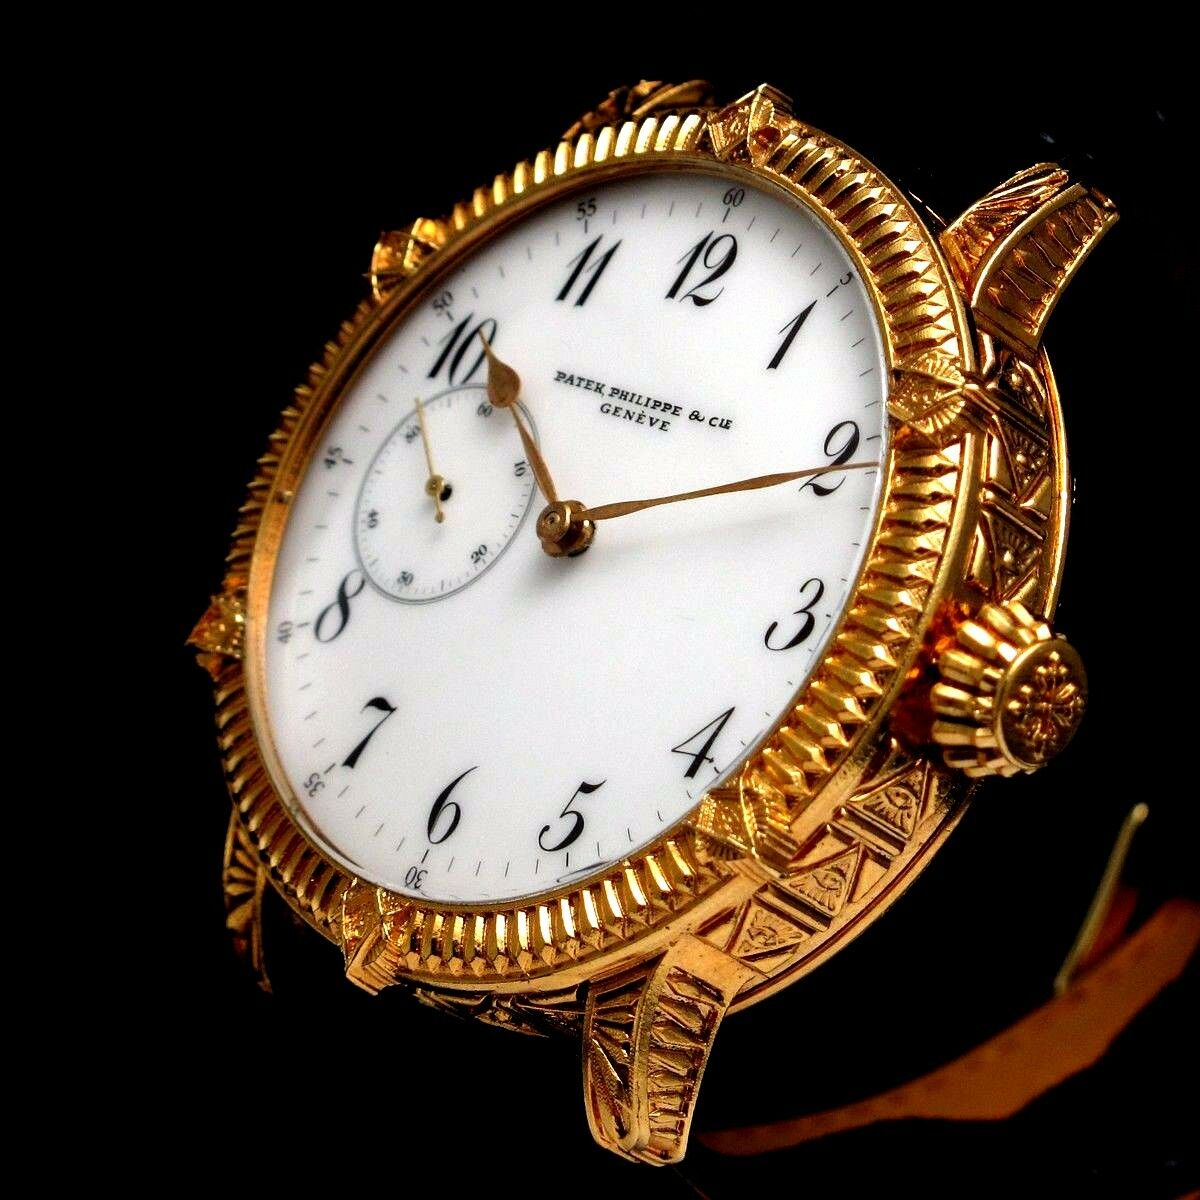 Vintage Mens Wristwatch PATEK PHILIPPE Mechanical Swiss Gold Men's Wrist Watch - watch picture 1